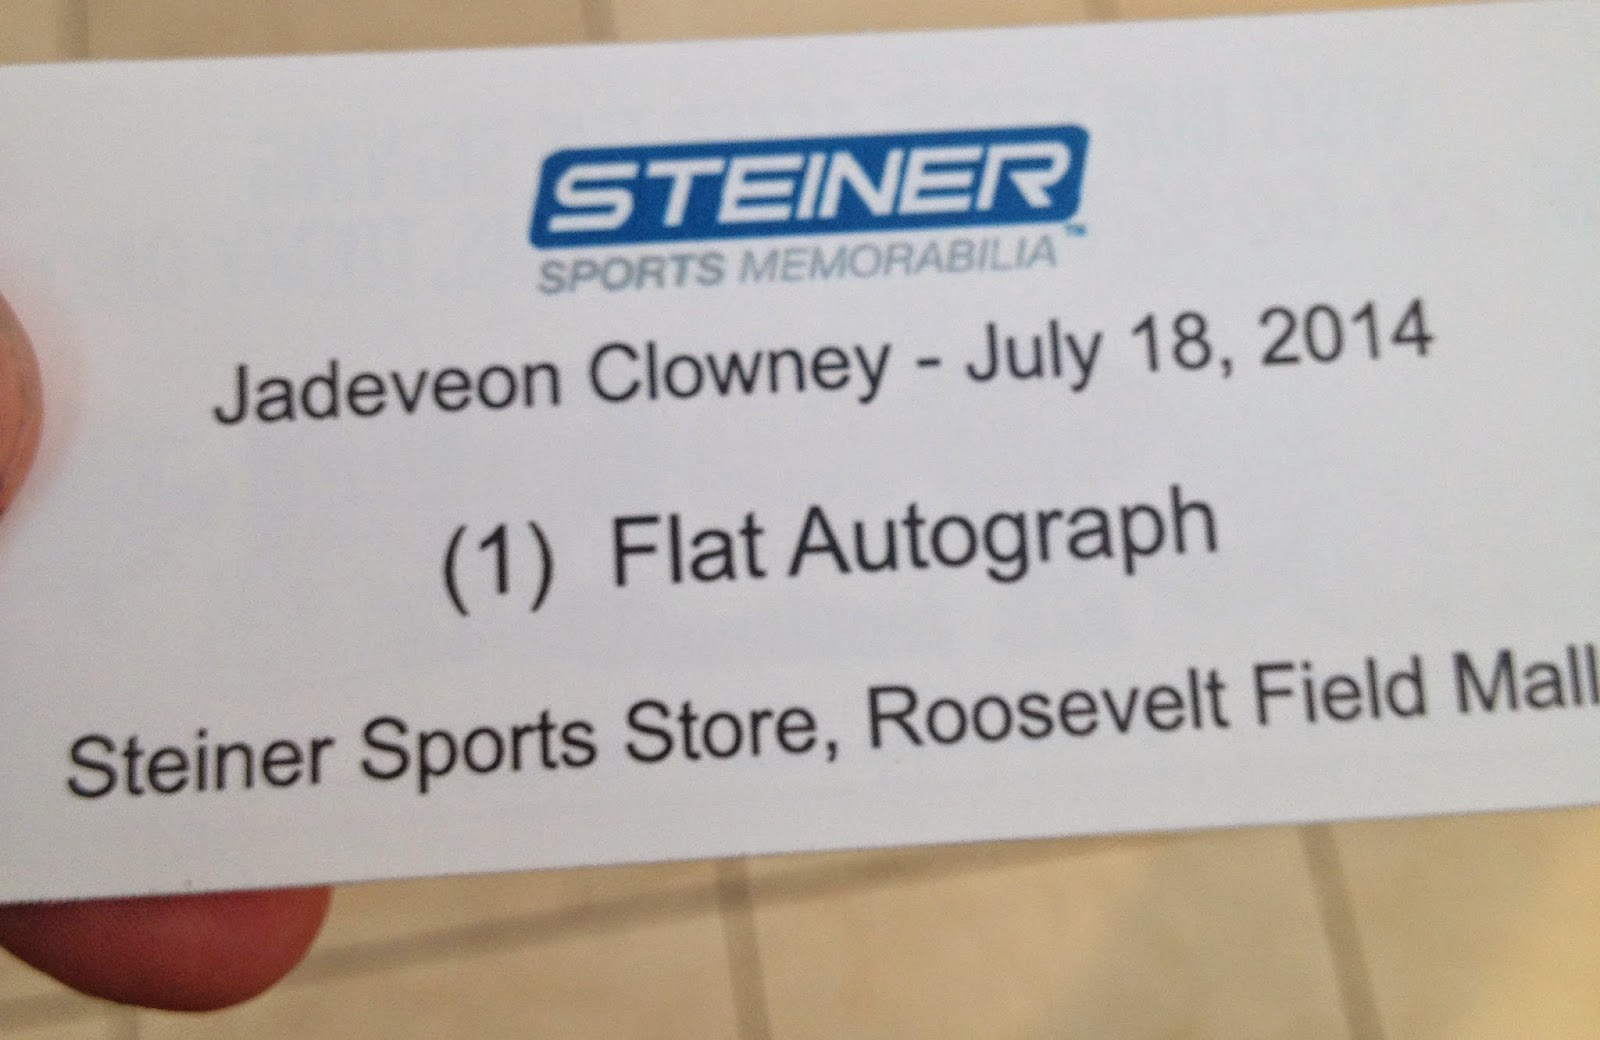 after going inside the steiner store at roosevelt field mall i identified myself as the contest winner and was given my